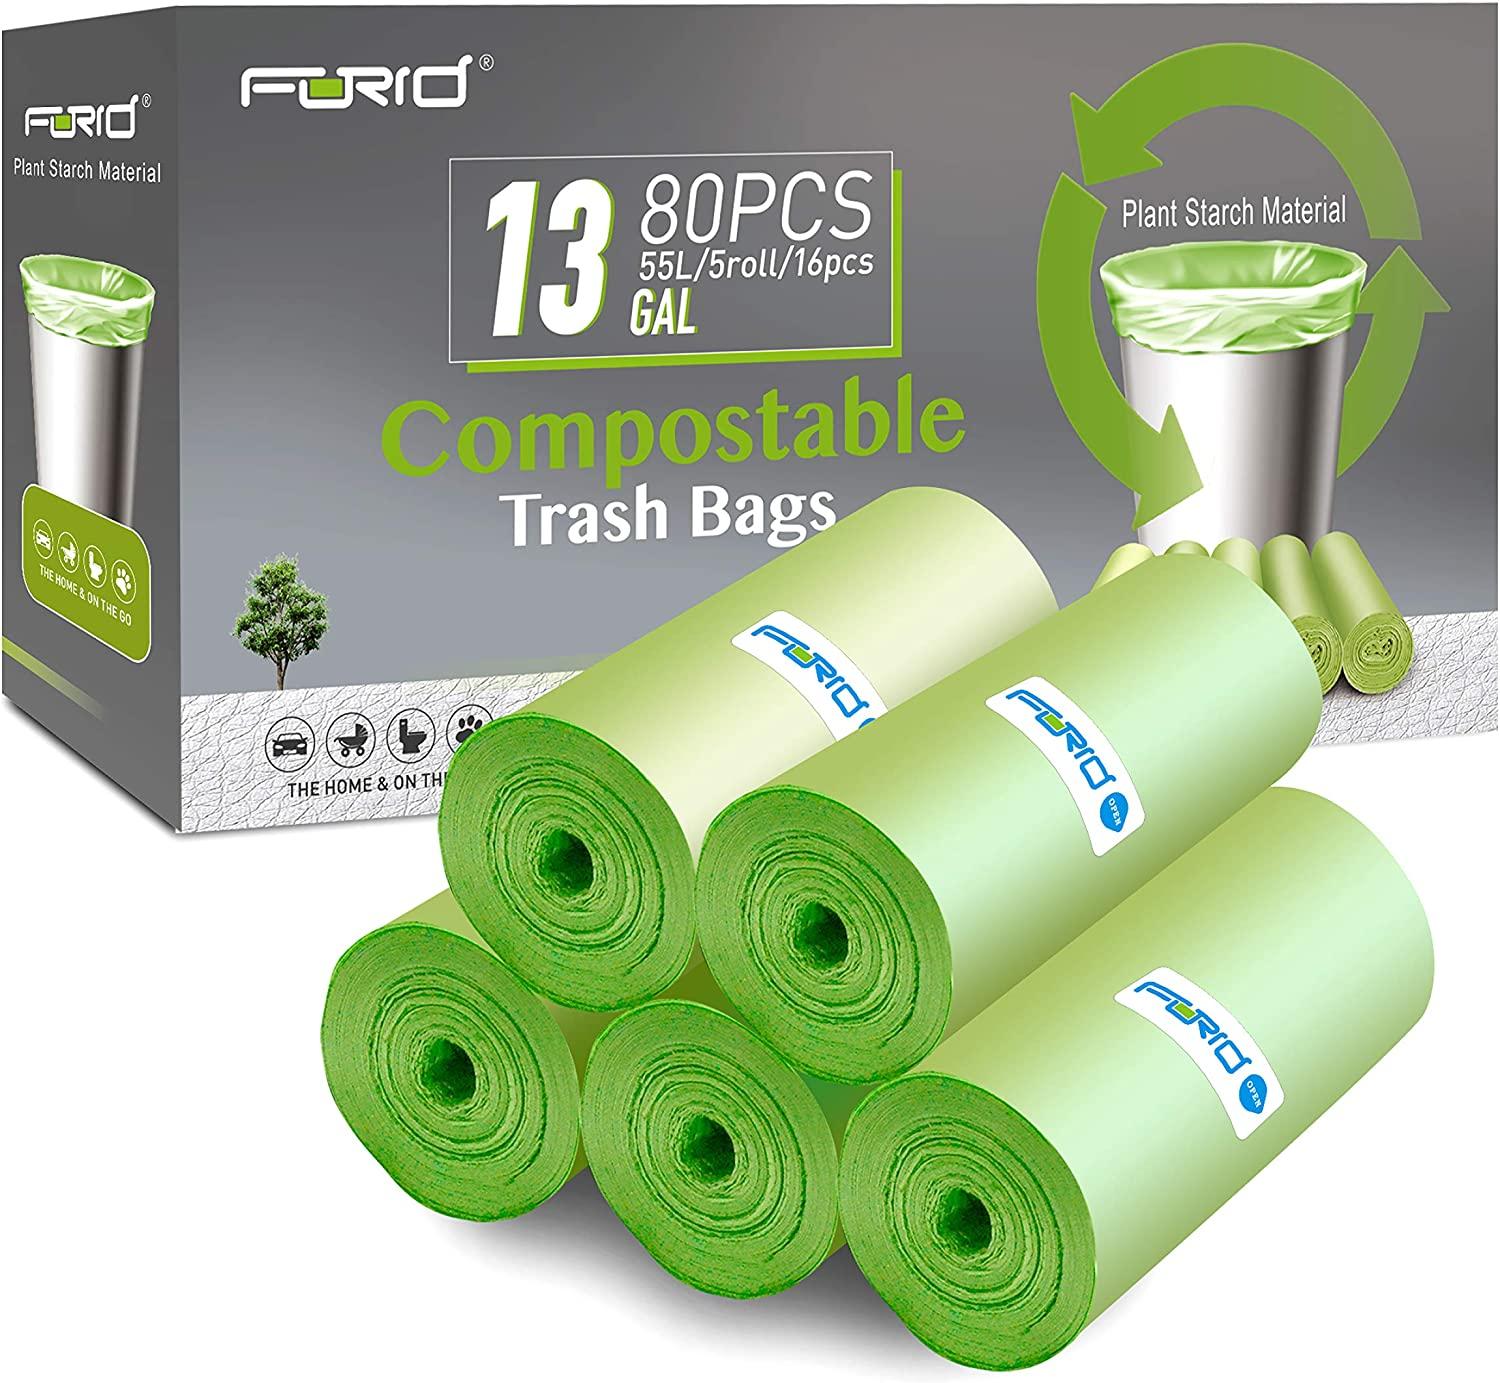 Compostable Trash Bags - FORID 13 Gallon Tall Kitchen Garbage Bags 80 Count Unscented Trash Can Liners 55 Liter Medium Wastebasket Bags for Bathroom Home Bedroom Office Garbage Can (5Rolls/Green)